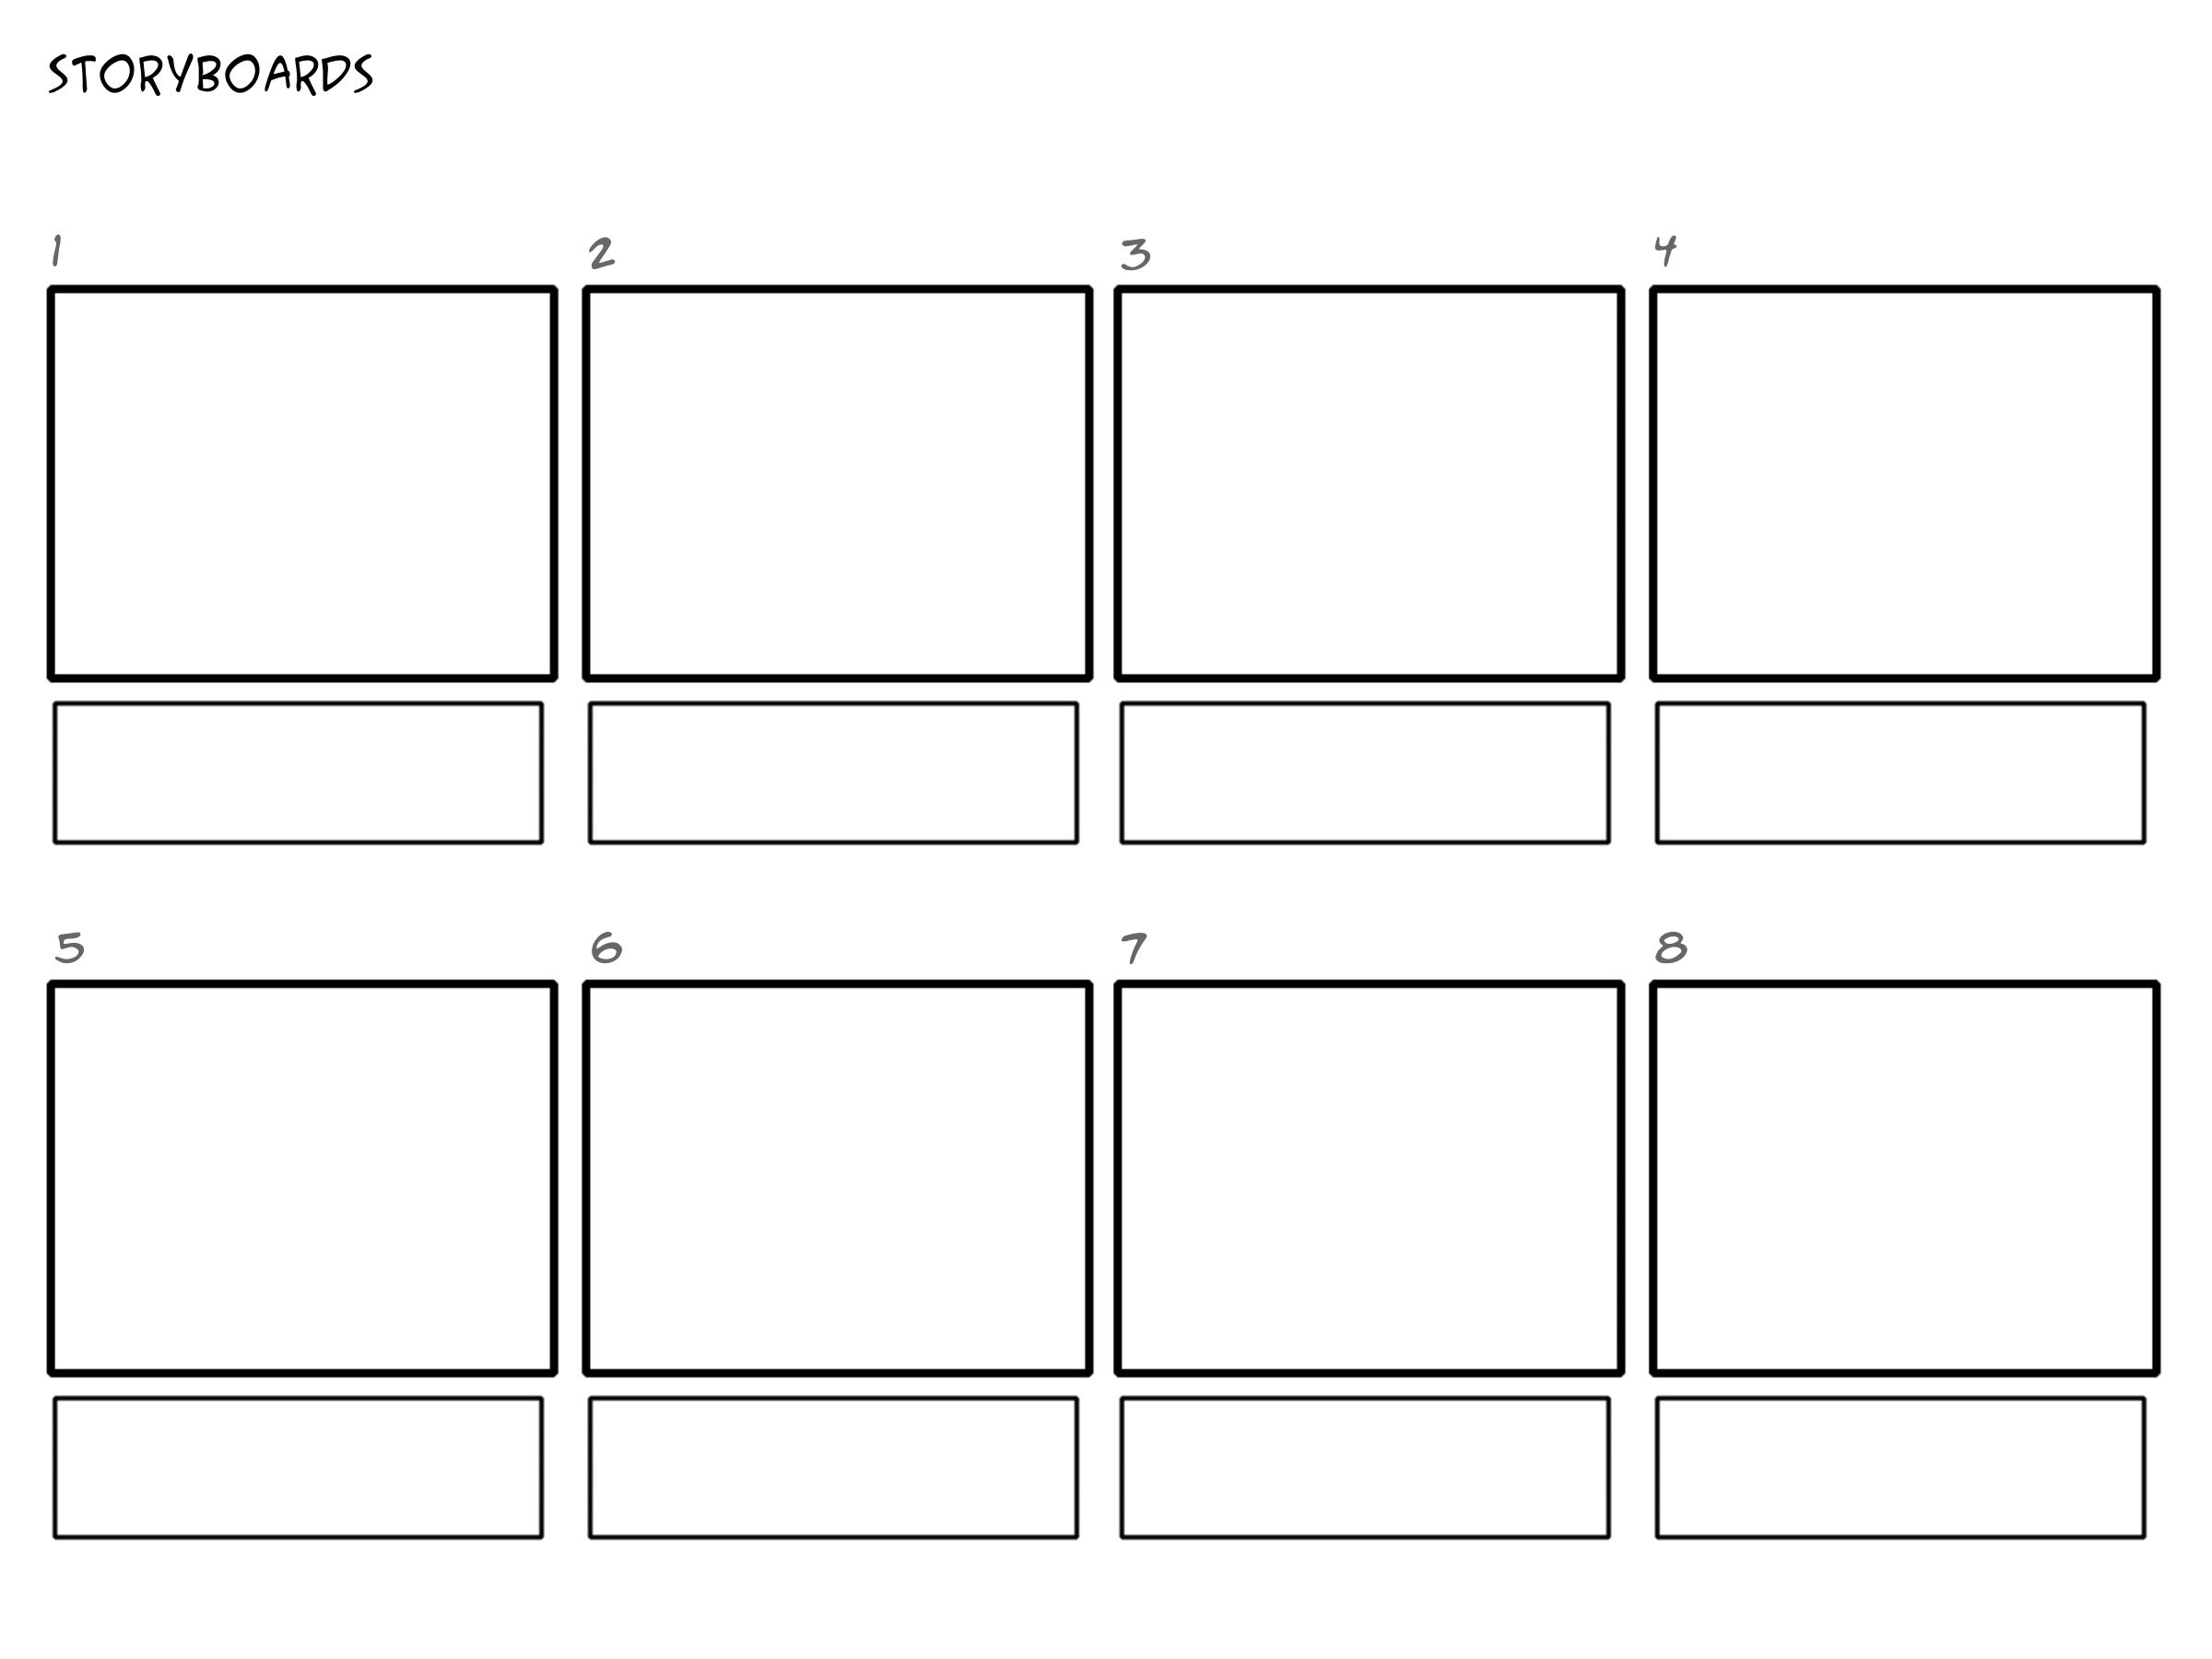 Professional Storyboard Templates | (Crafts) To Diy | Pinterest